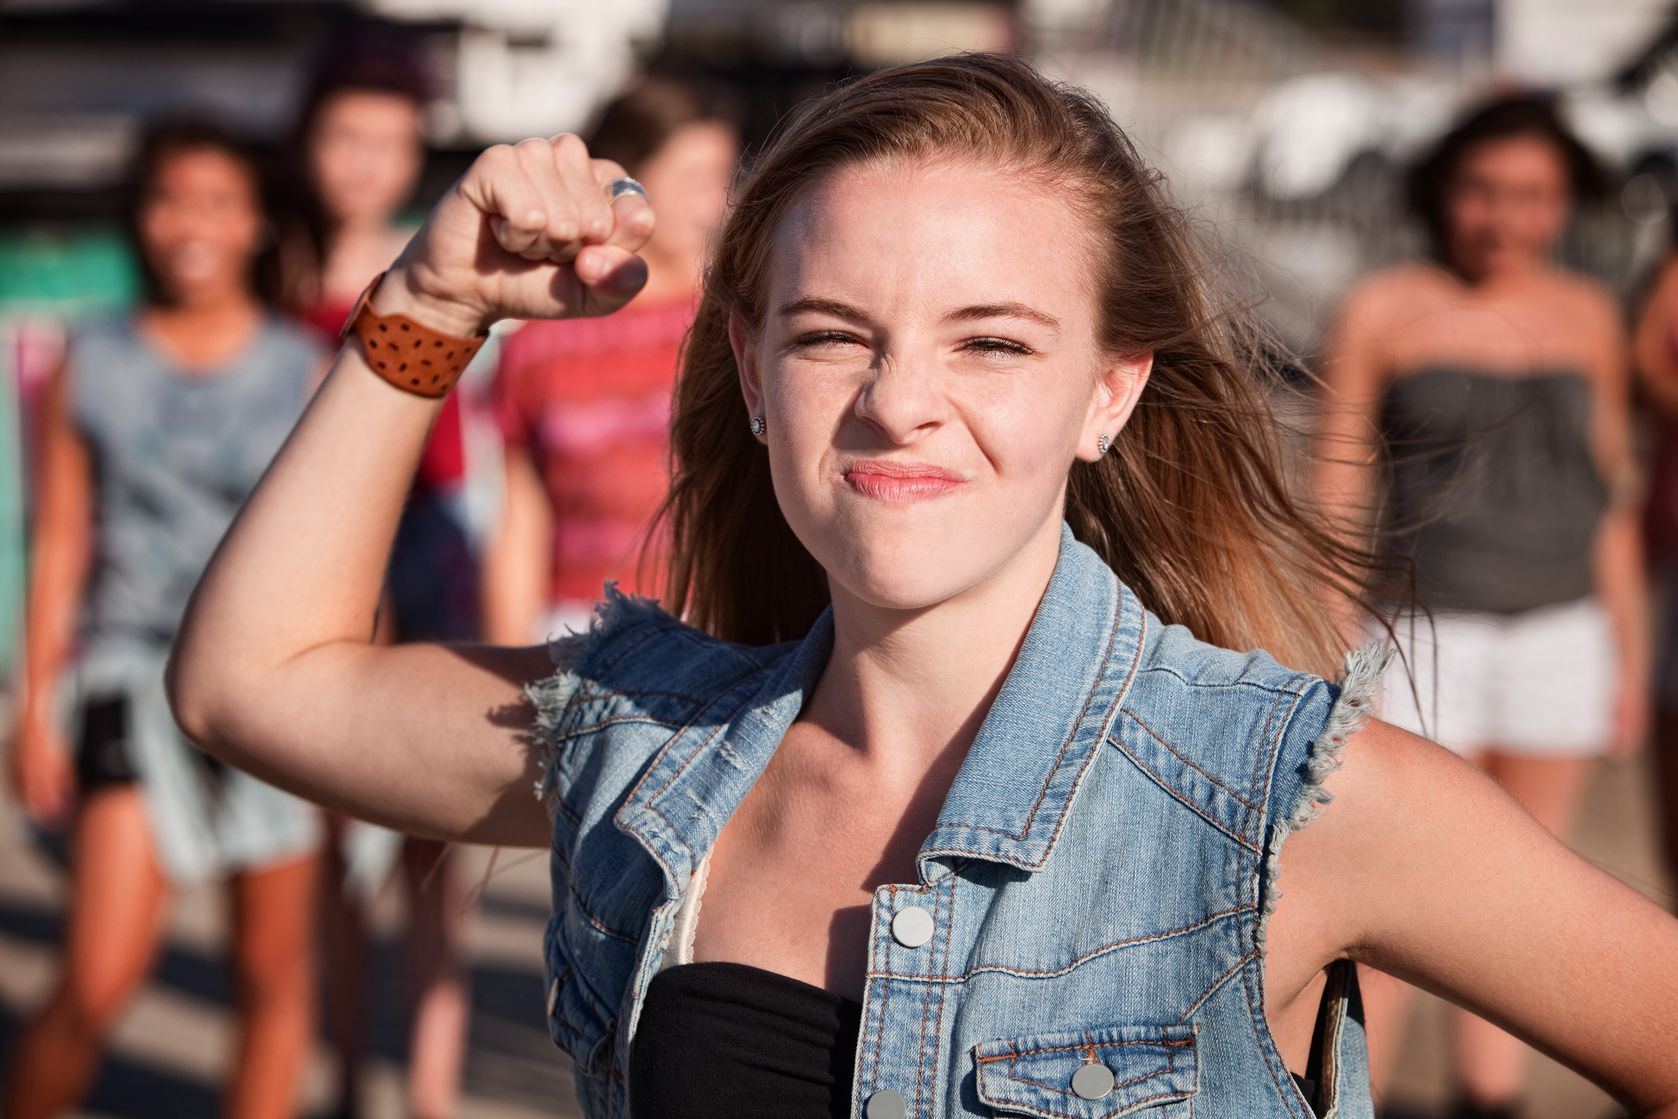 angry young girl in denim jacket raising fist